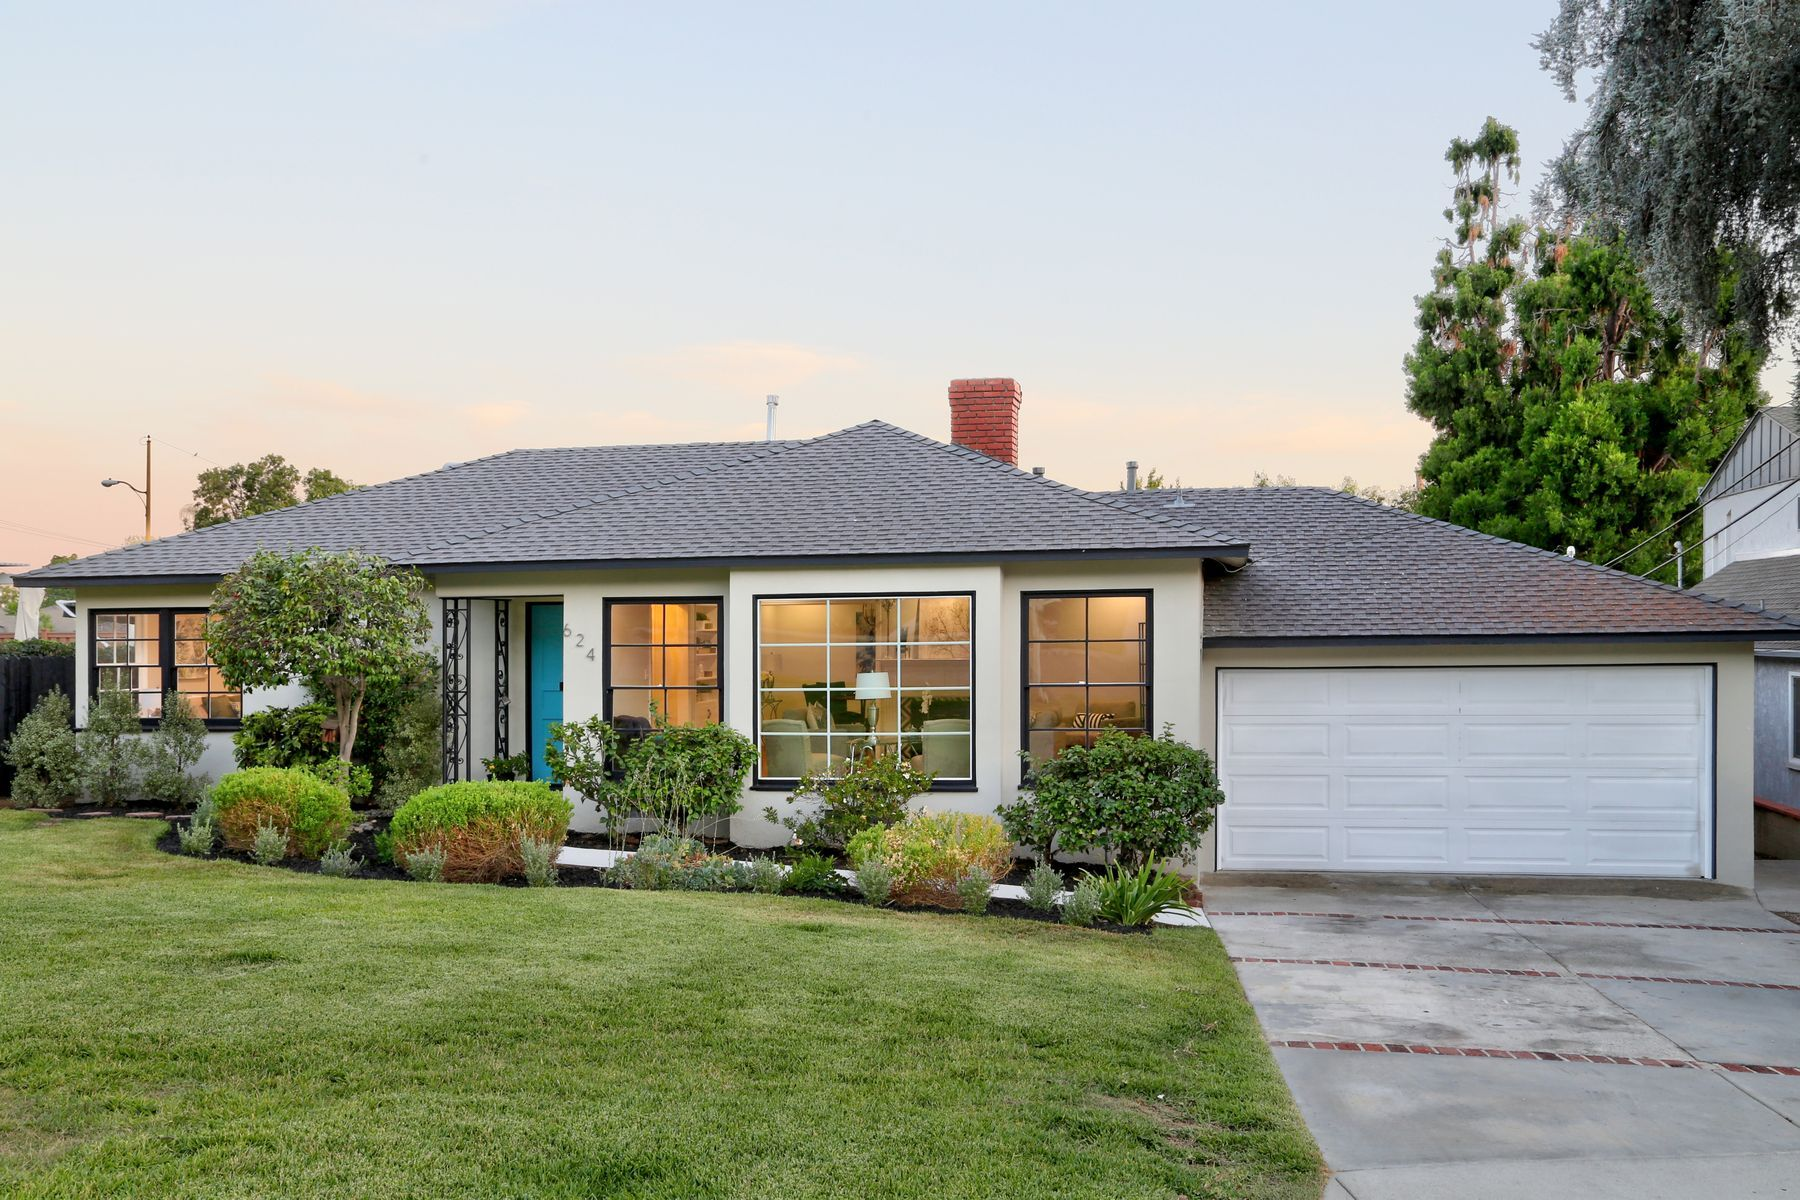 Single Family Homes for Sale at 624 West Hillcrest Boulevard Monrovia, California 91016 United States